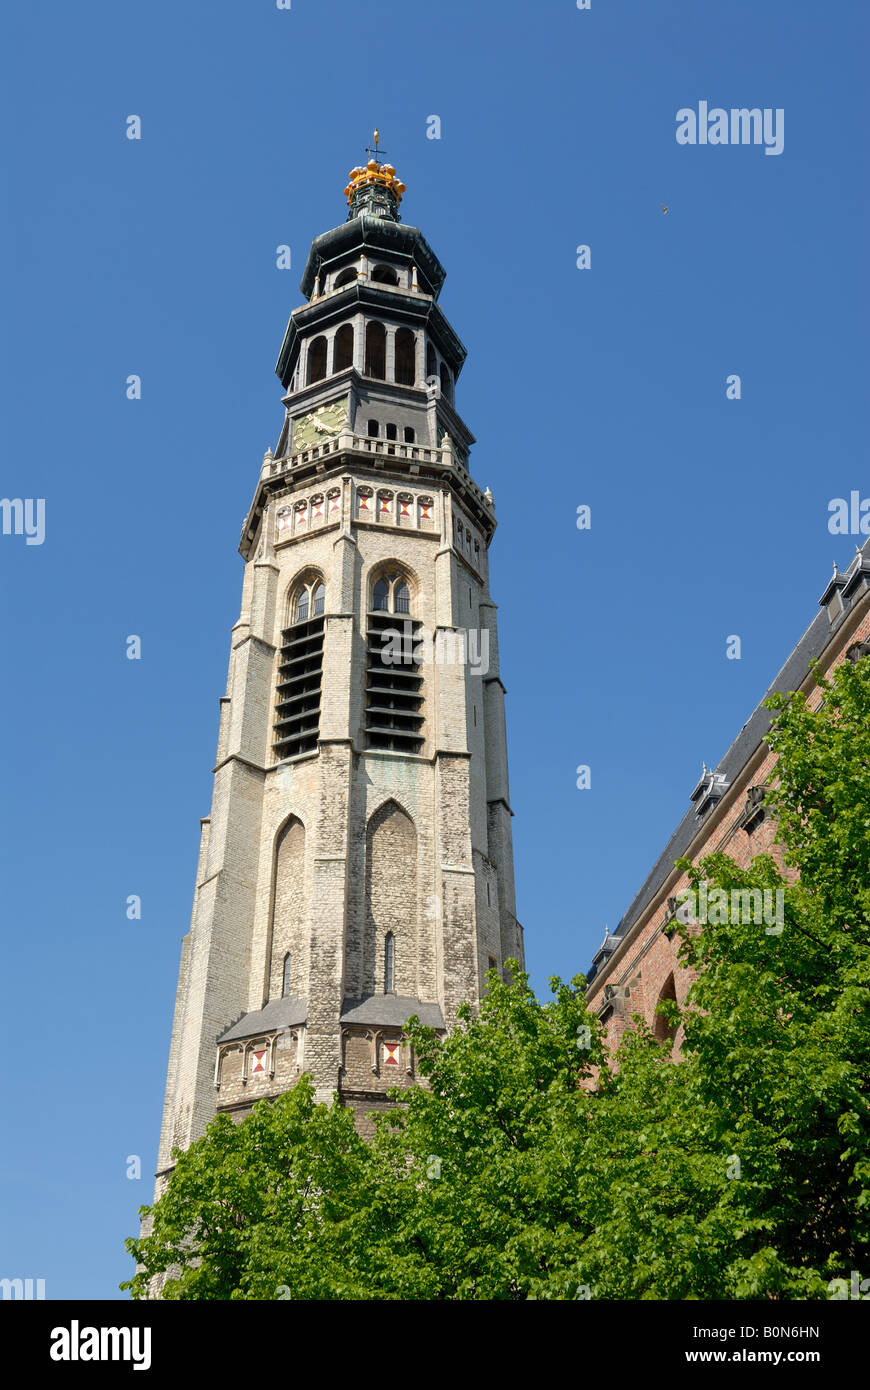 Bell tower of the medieval Cathedral in Middelburg, the Netherlands Stock Photo